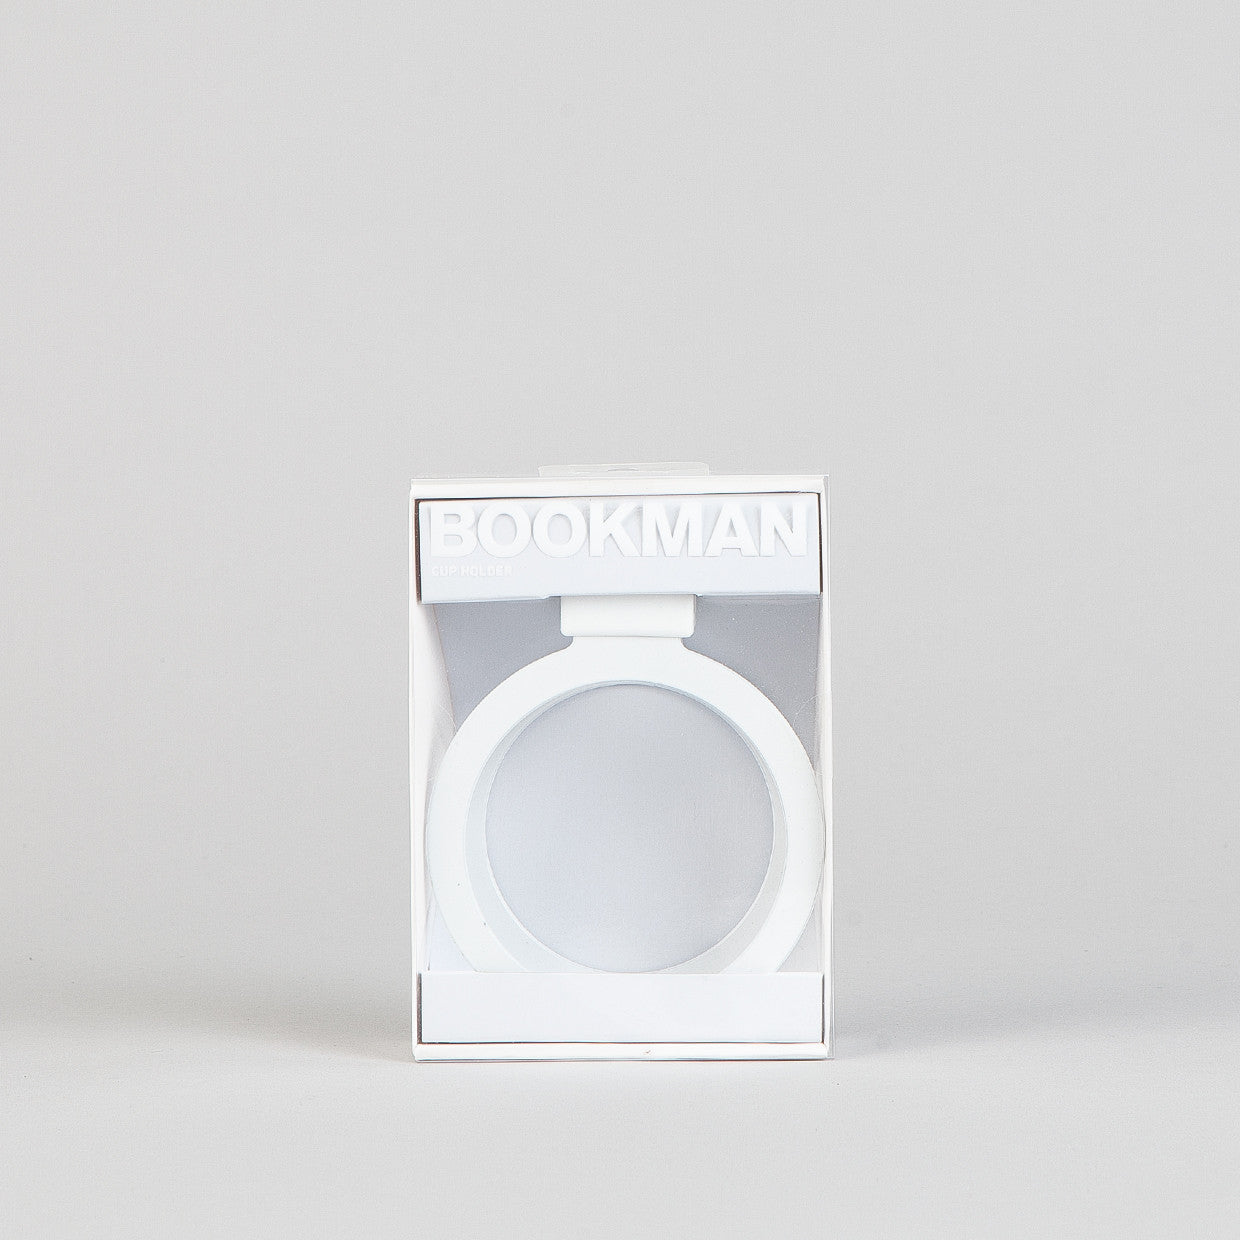 Bookman Cup Holder White